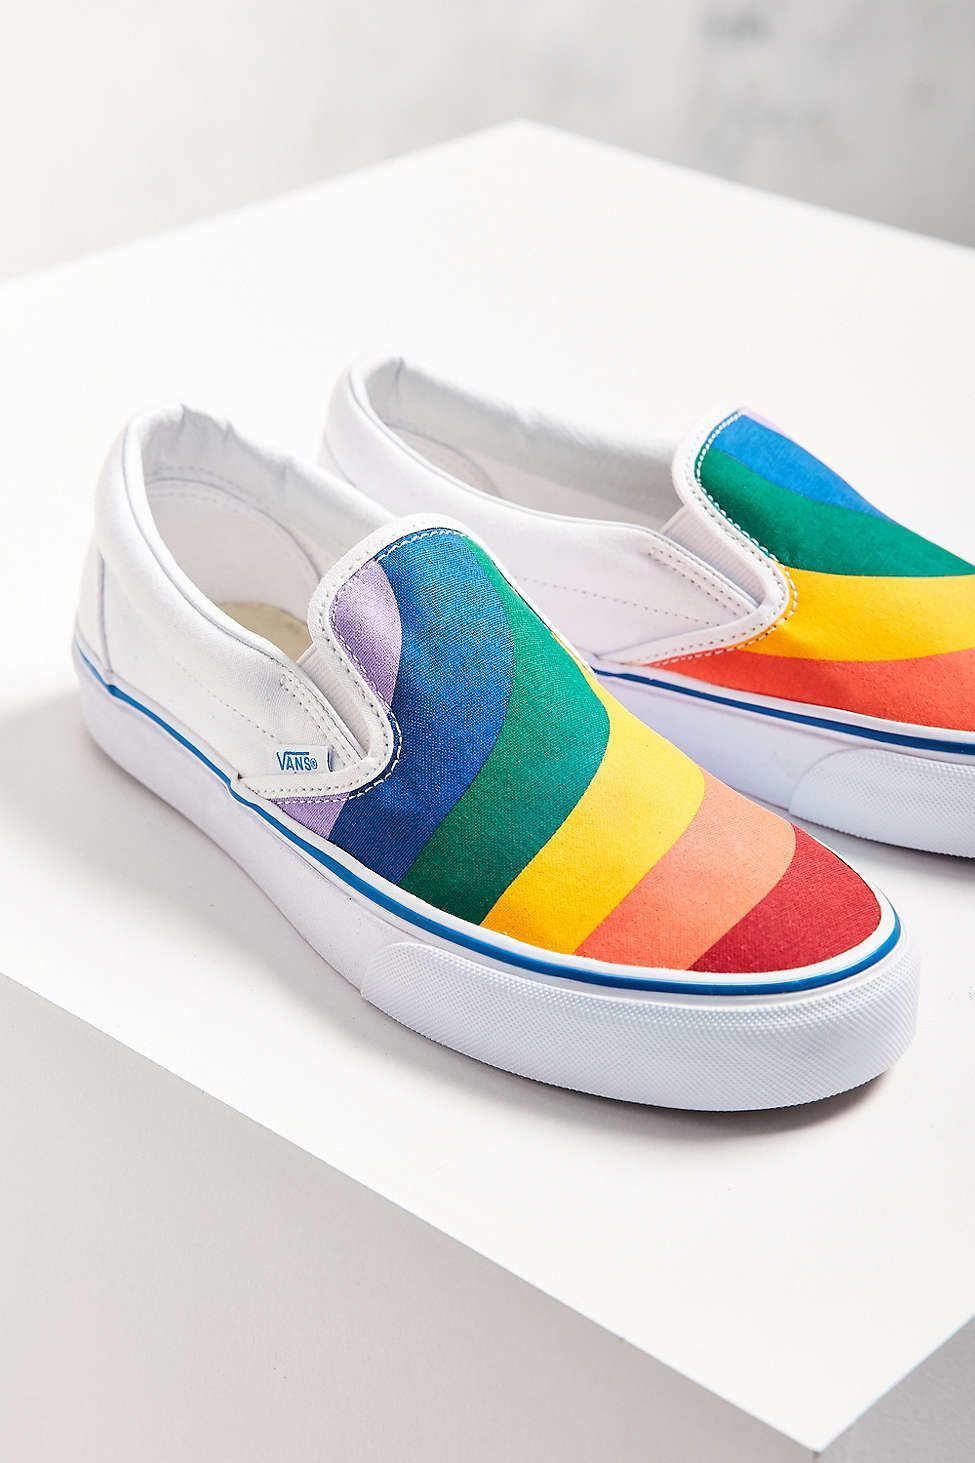 0d7c67e2a3b526 Vans Rainbow Slip-On Sneaker in 2019